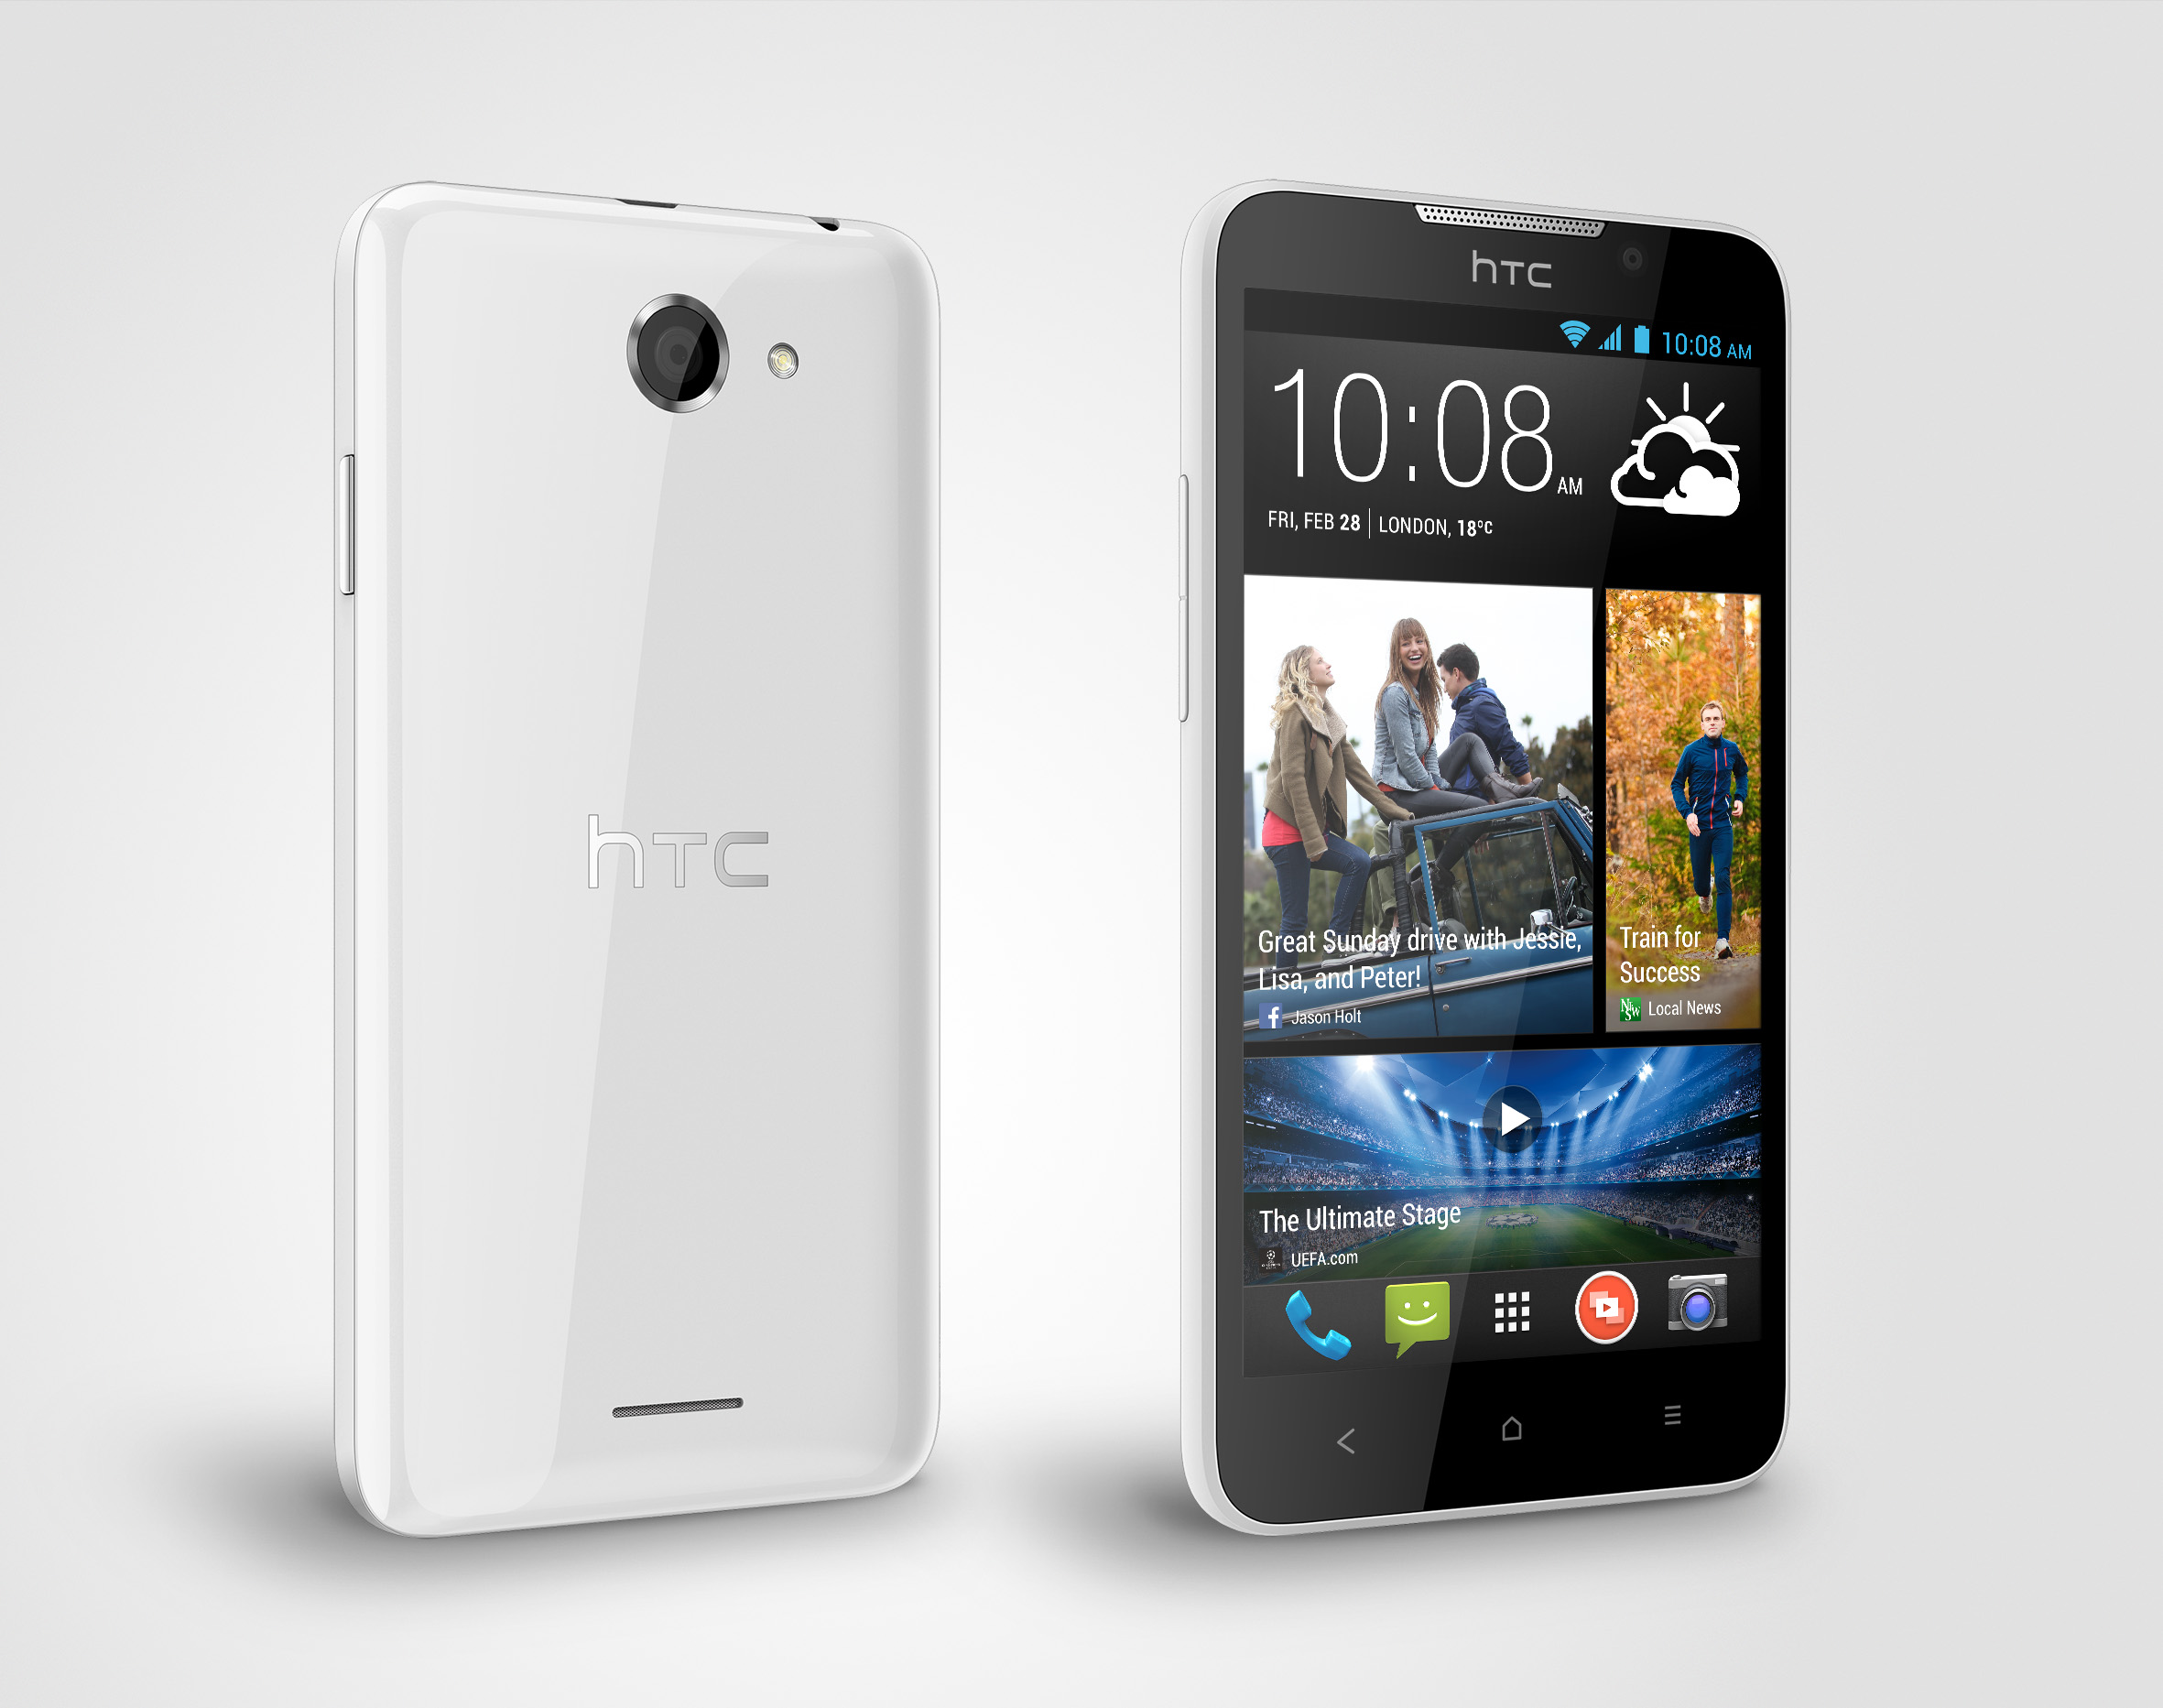 HTC-Desire-516-official-images-2